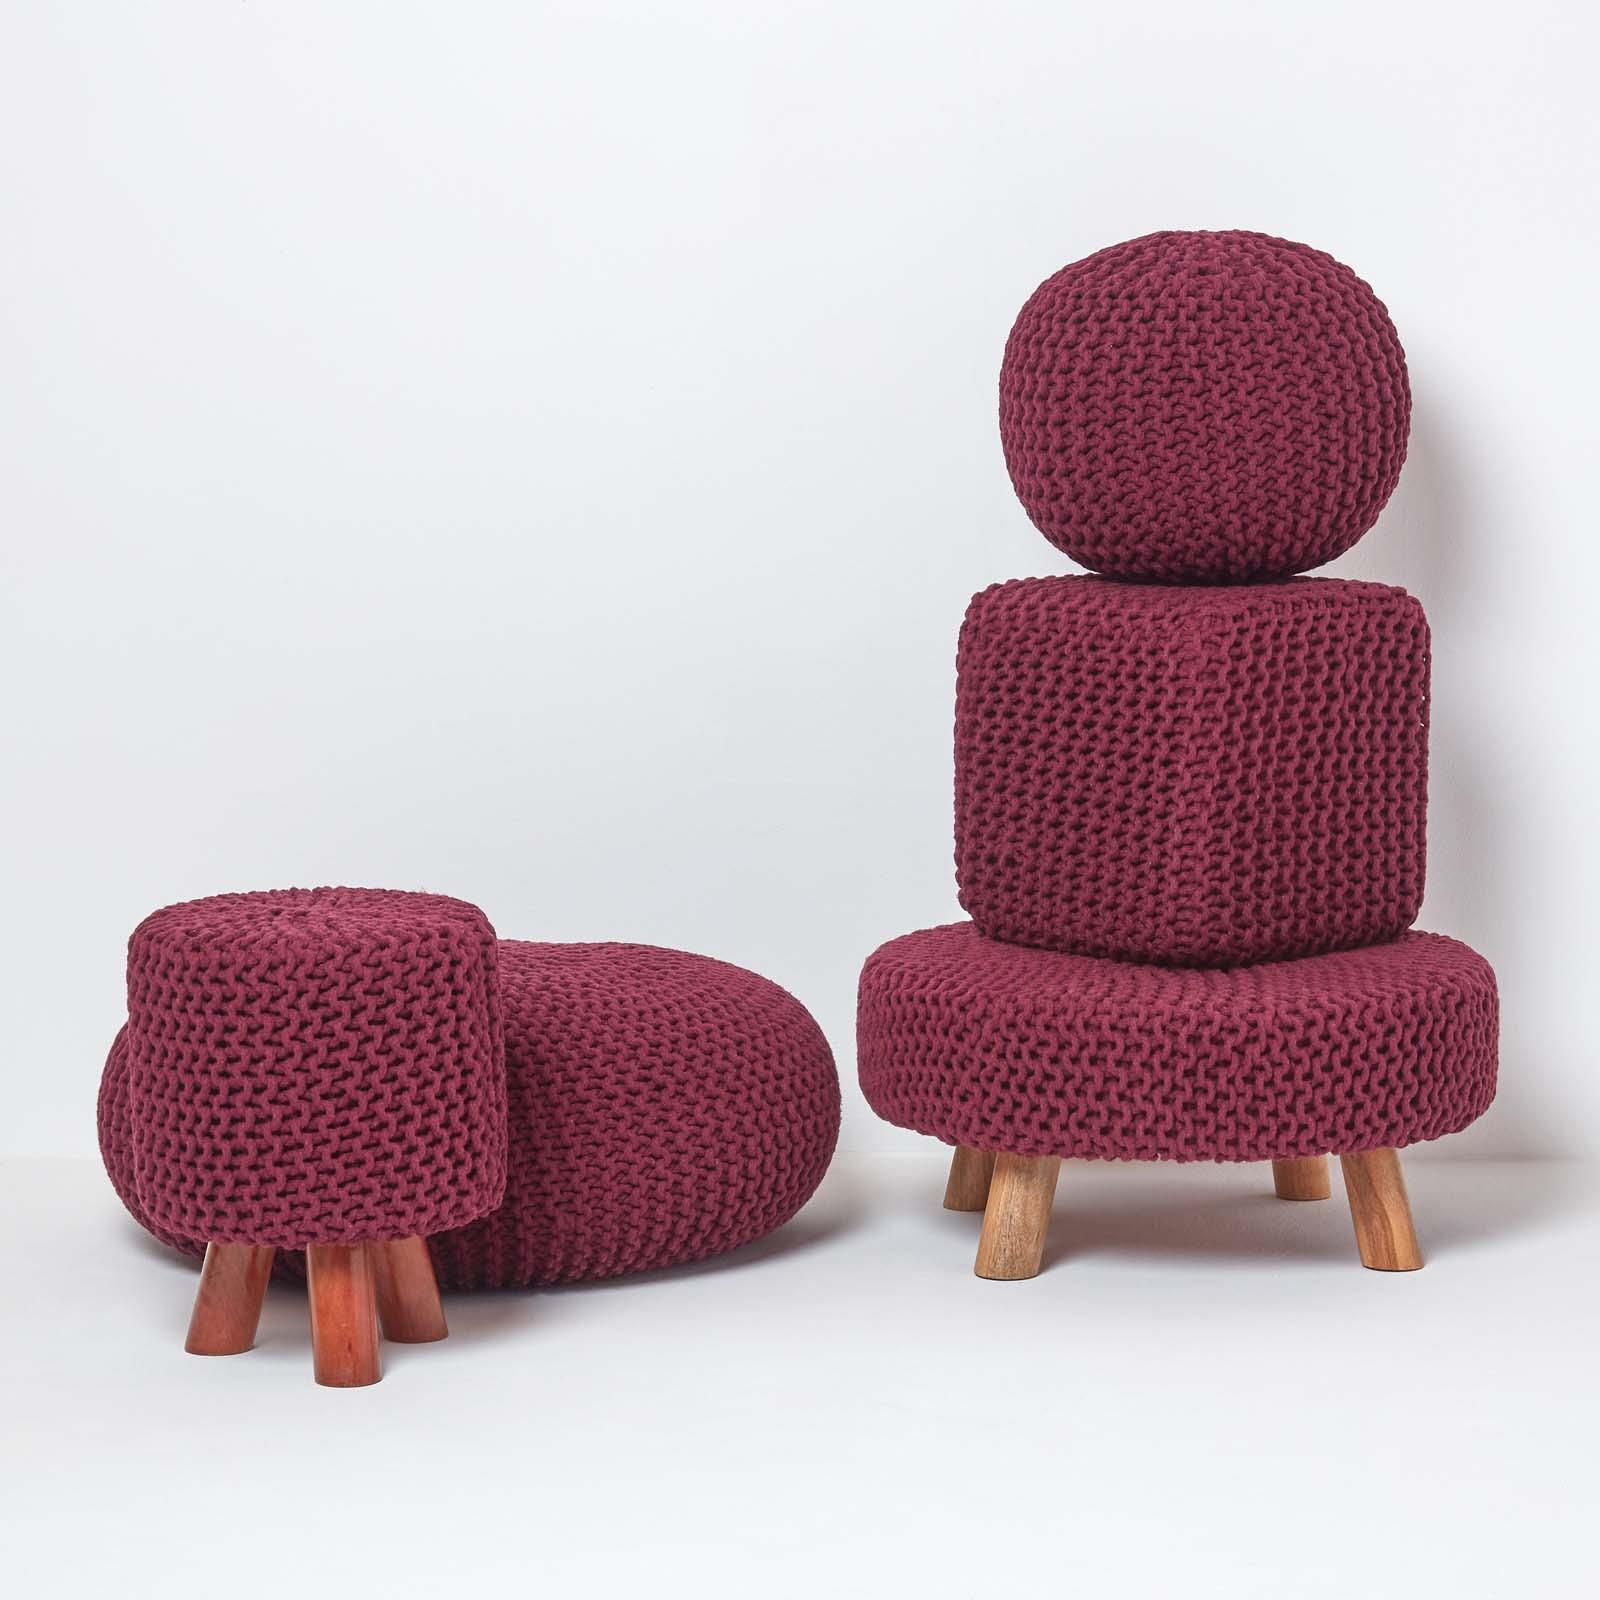 Hand-Knitted-100-Cotton-Pouffes-Round-Sphere-Or-Cube-Square-Chunky-Footstools thumbnail 161